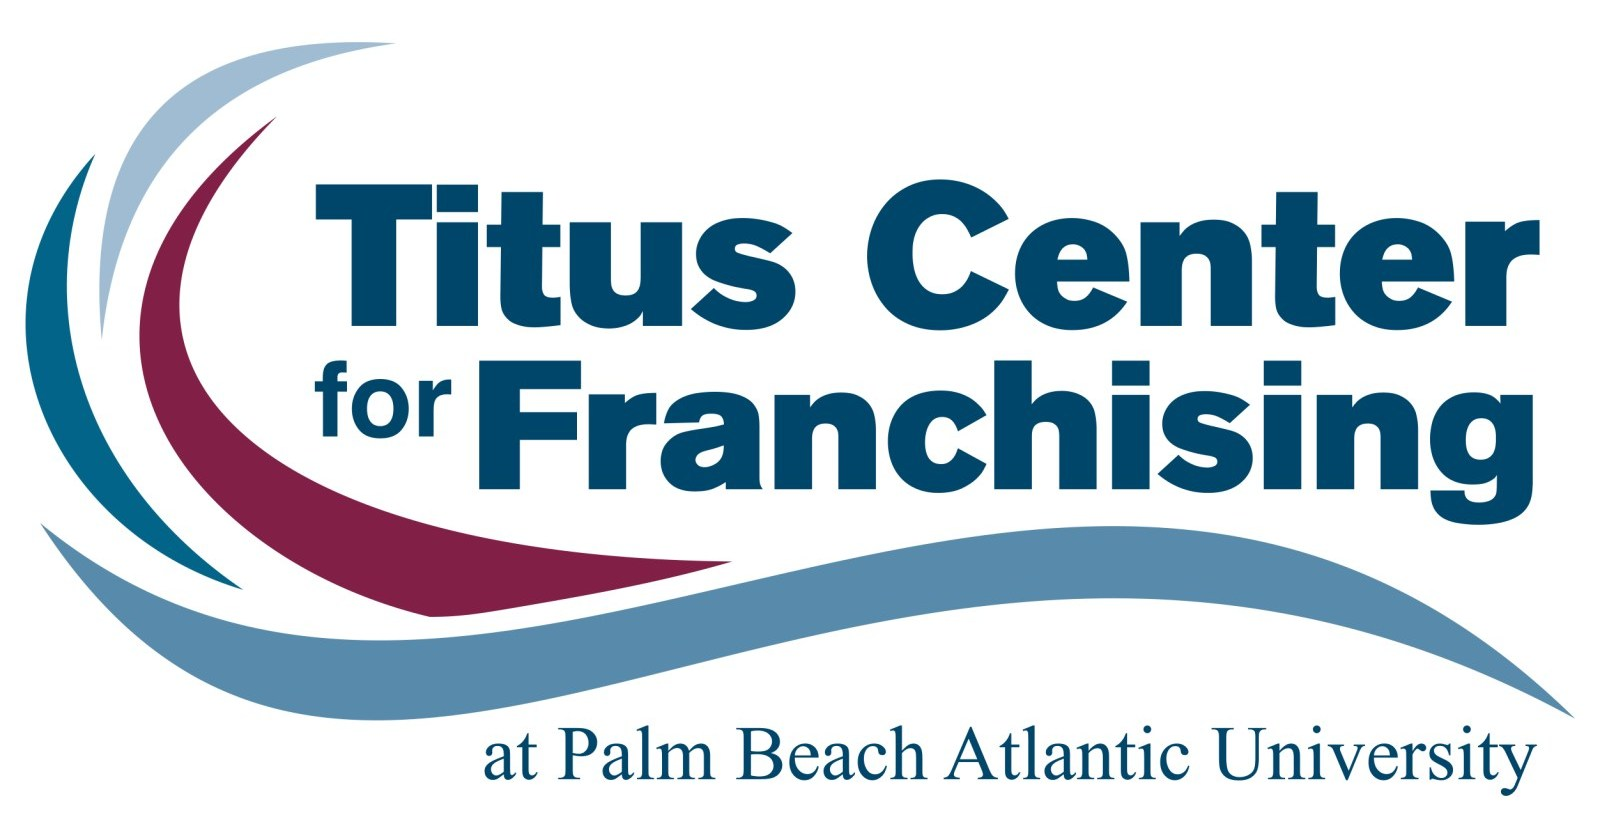 Titus Center for Franchising to Host First Annual Selling Franchises Bootcamp Jan. 22-23, 2019, at Palm Beach Atlantic University in West Palm Beach, Florida